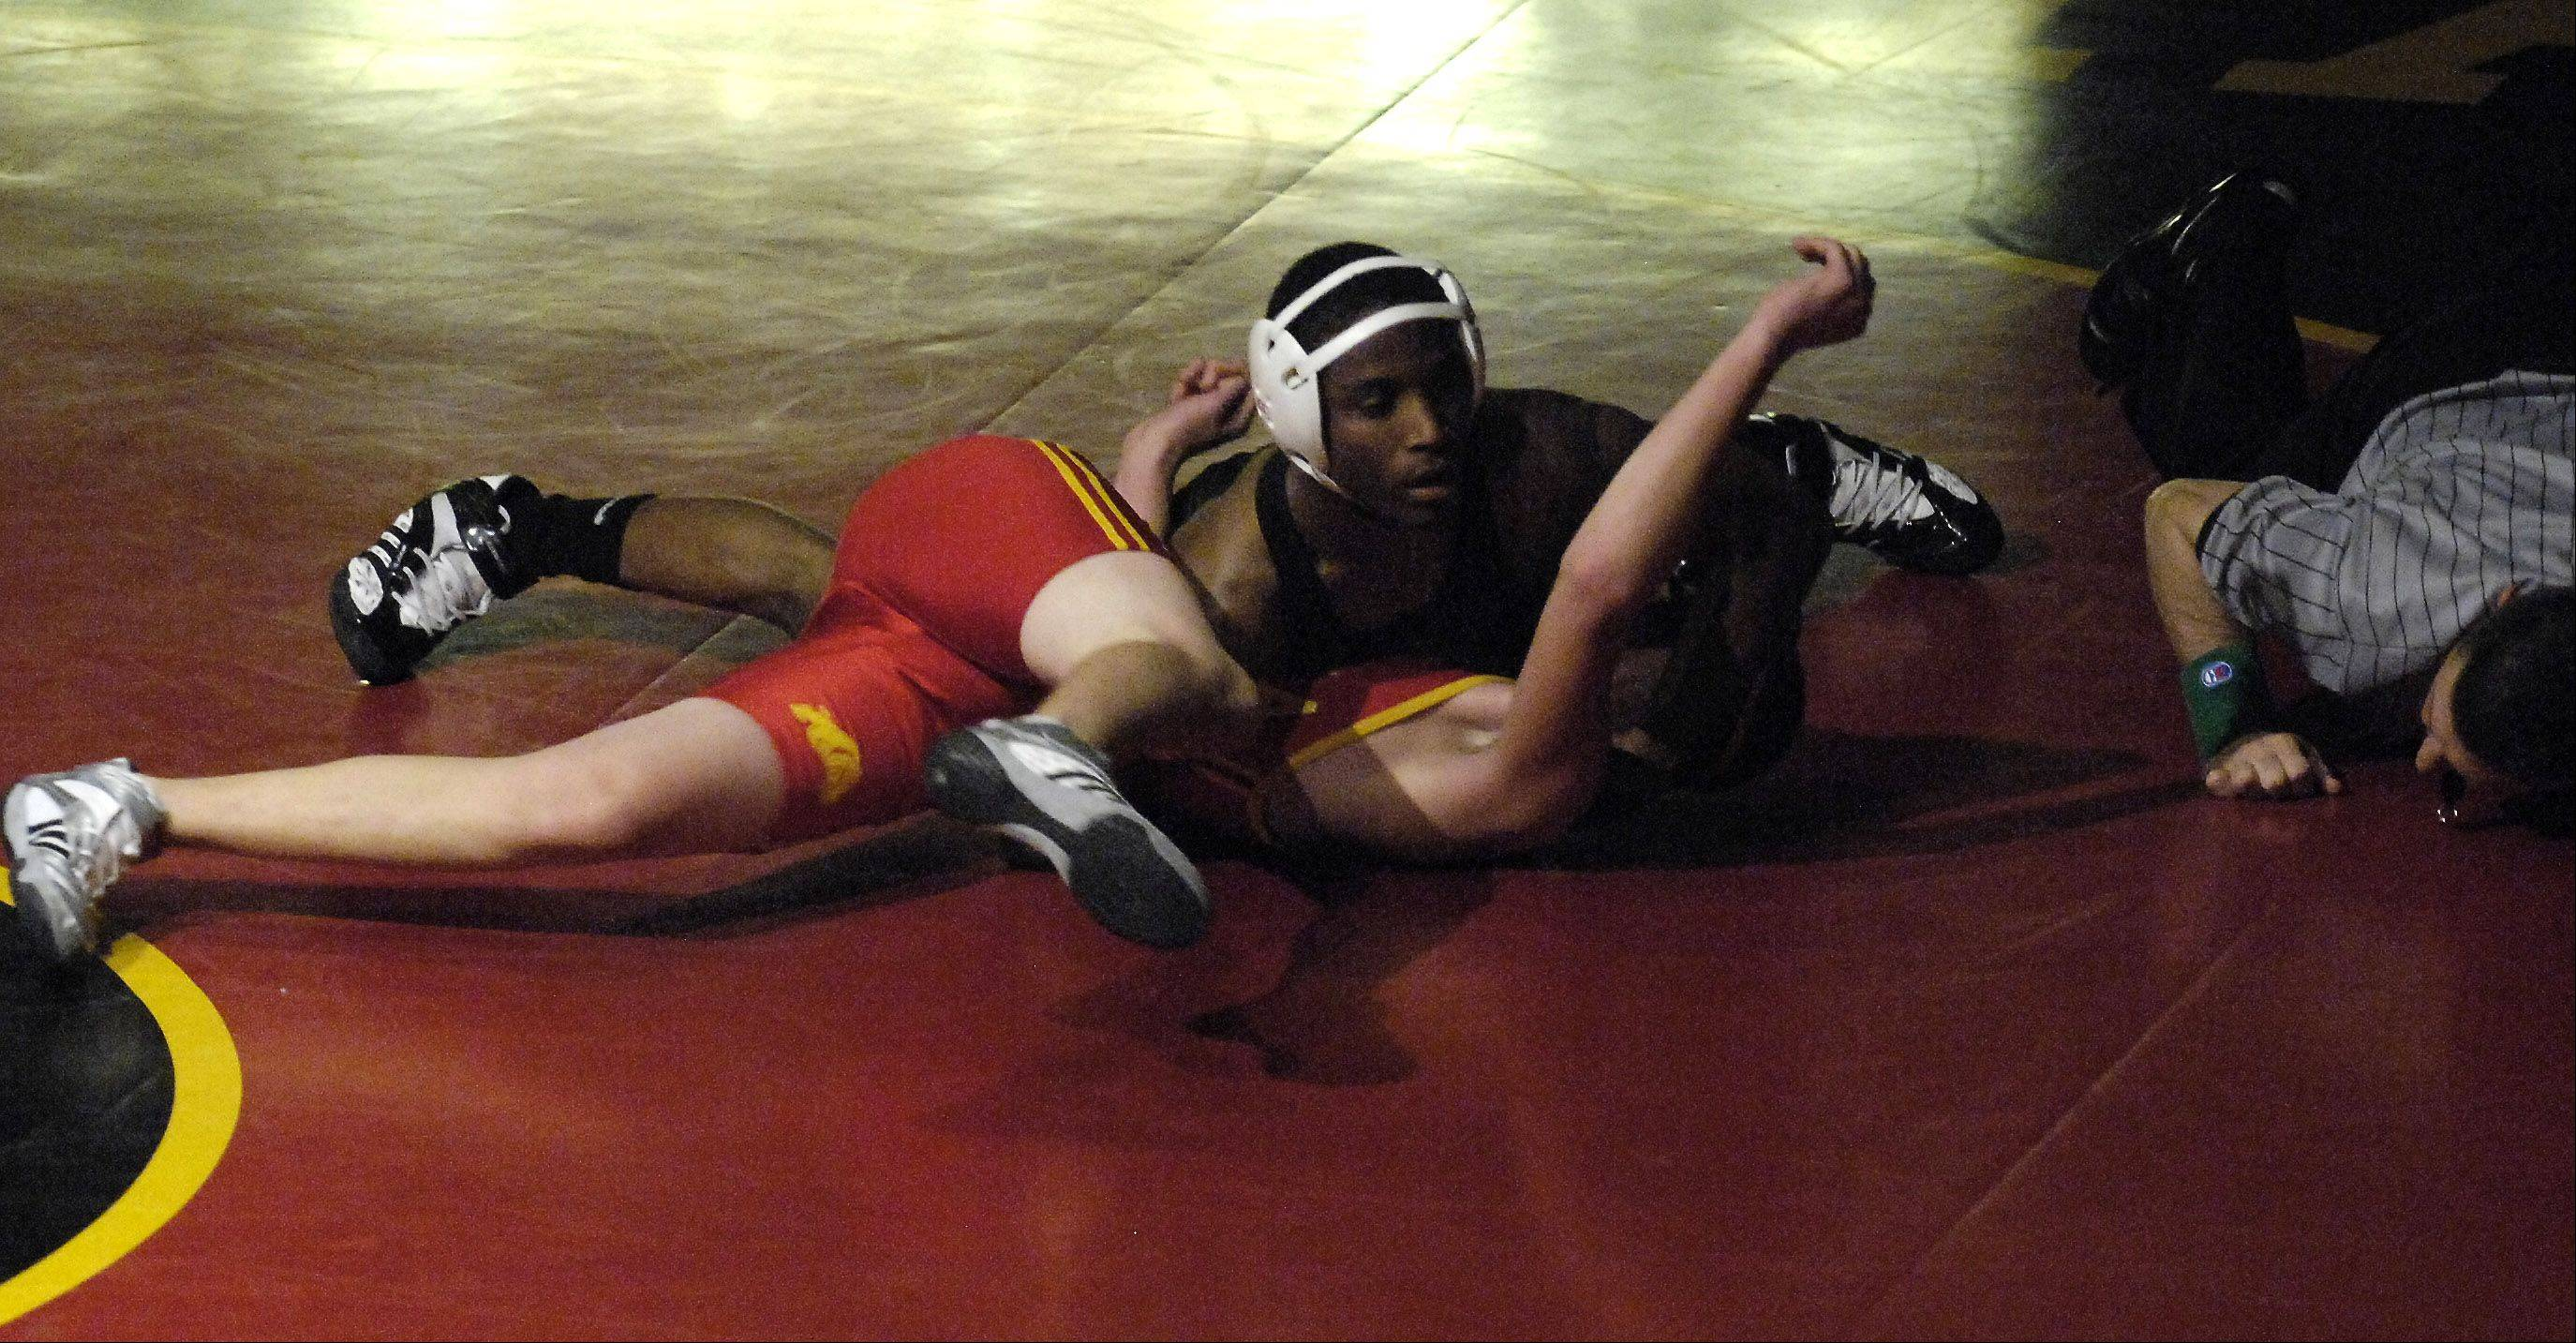 Geneva's Keneen Freeman scored a fast pin on Batavia's Shane Moczynski in the 132 pound division during wrestling action Thursday at Batavia.